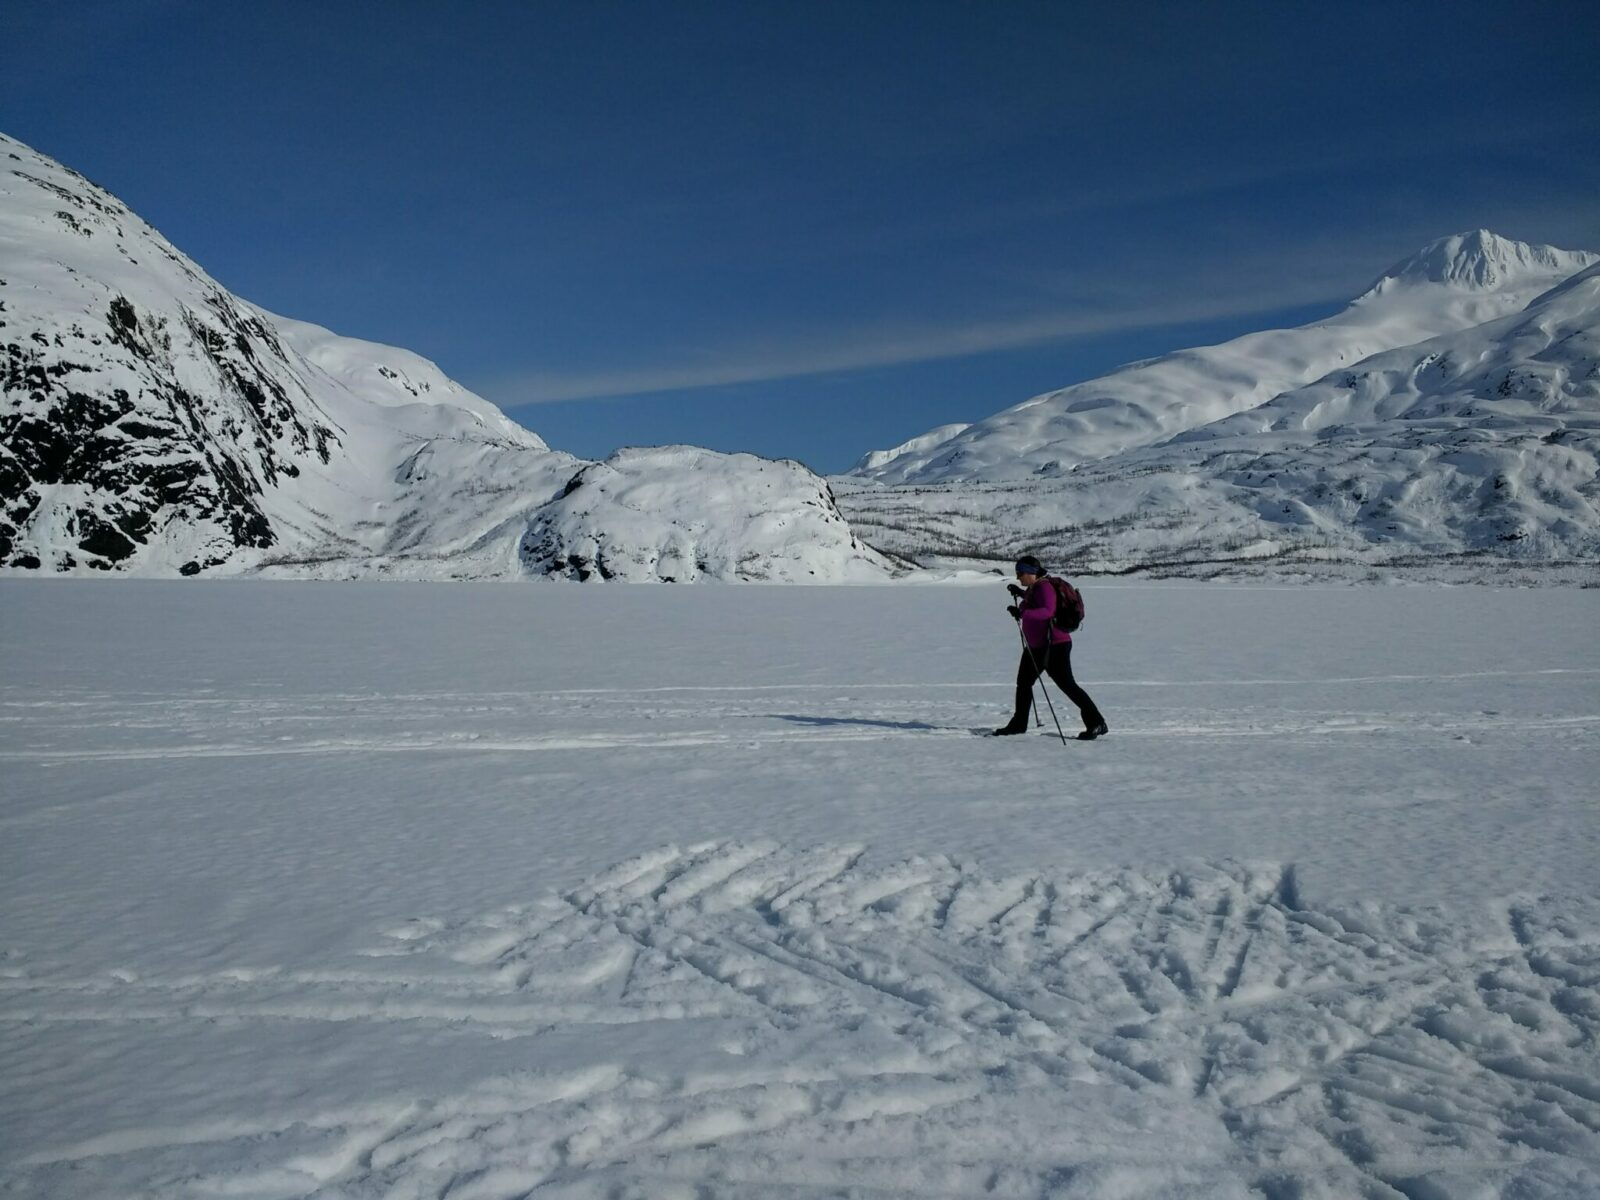 On a weekend trip to Alaska in winter, a cross country skier skies across a frozen lake on a sunny day. There are snowy mountains surrounding the frozen lake